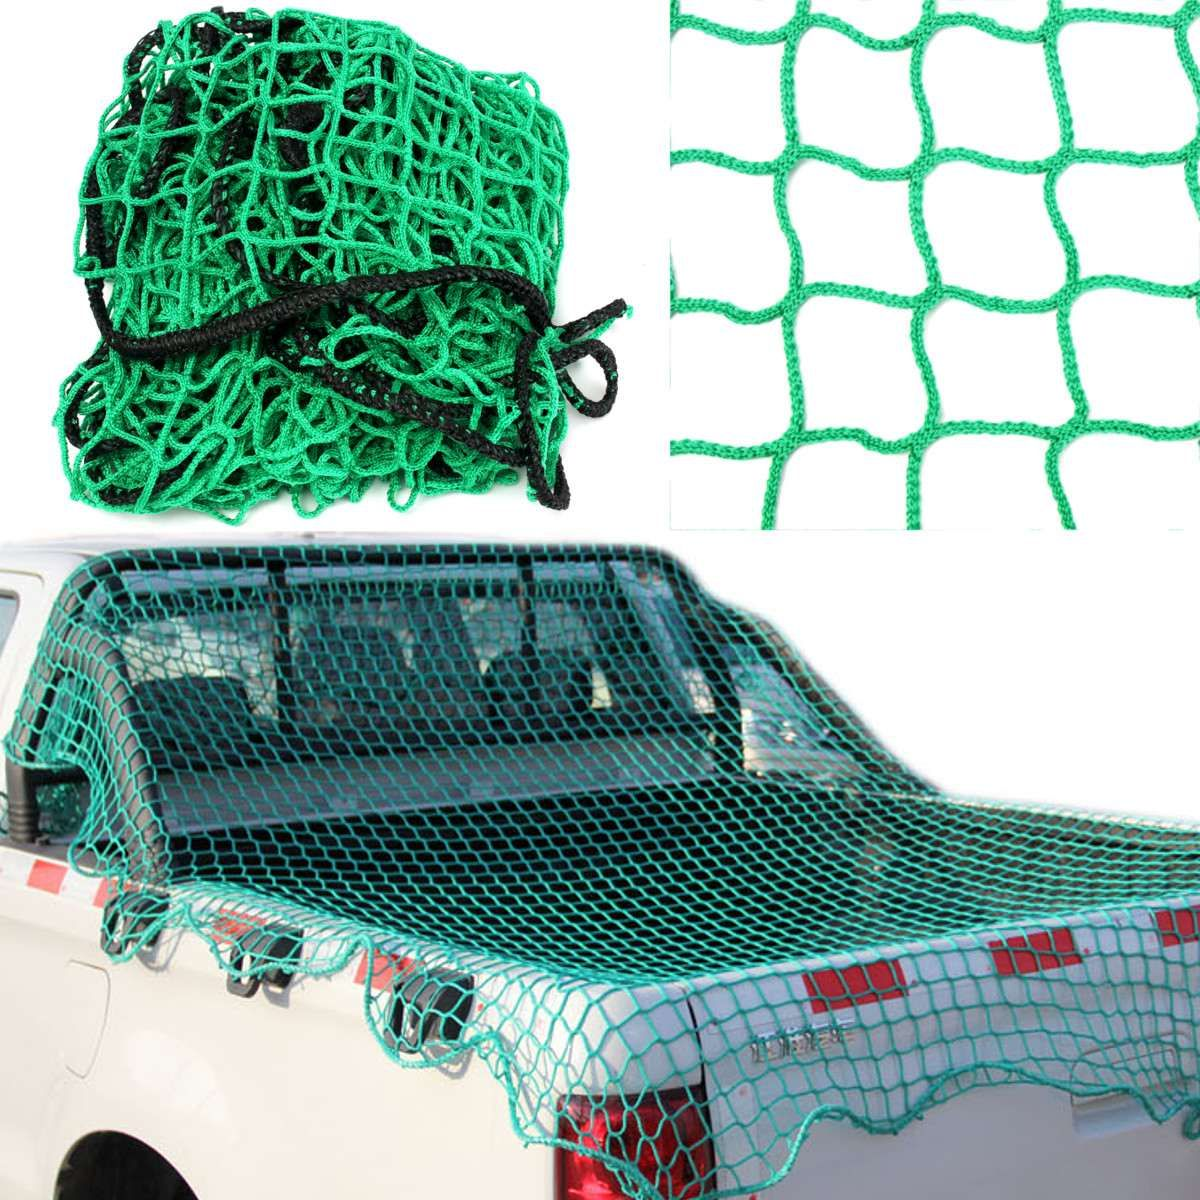 200cm x 300cm Cargo Net Bungee Pickup Car Truck Cargo Trailer Dumpster Extend Mesh Net Covers Roof Luggage